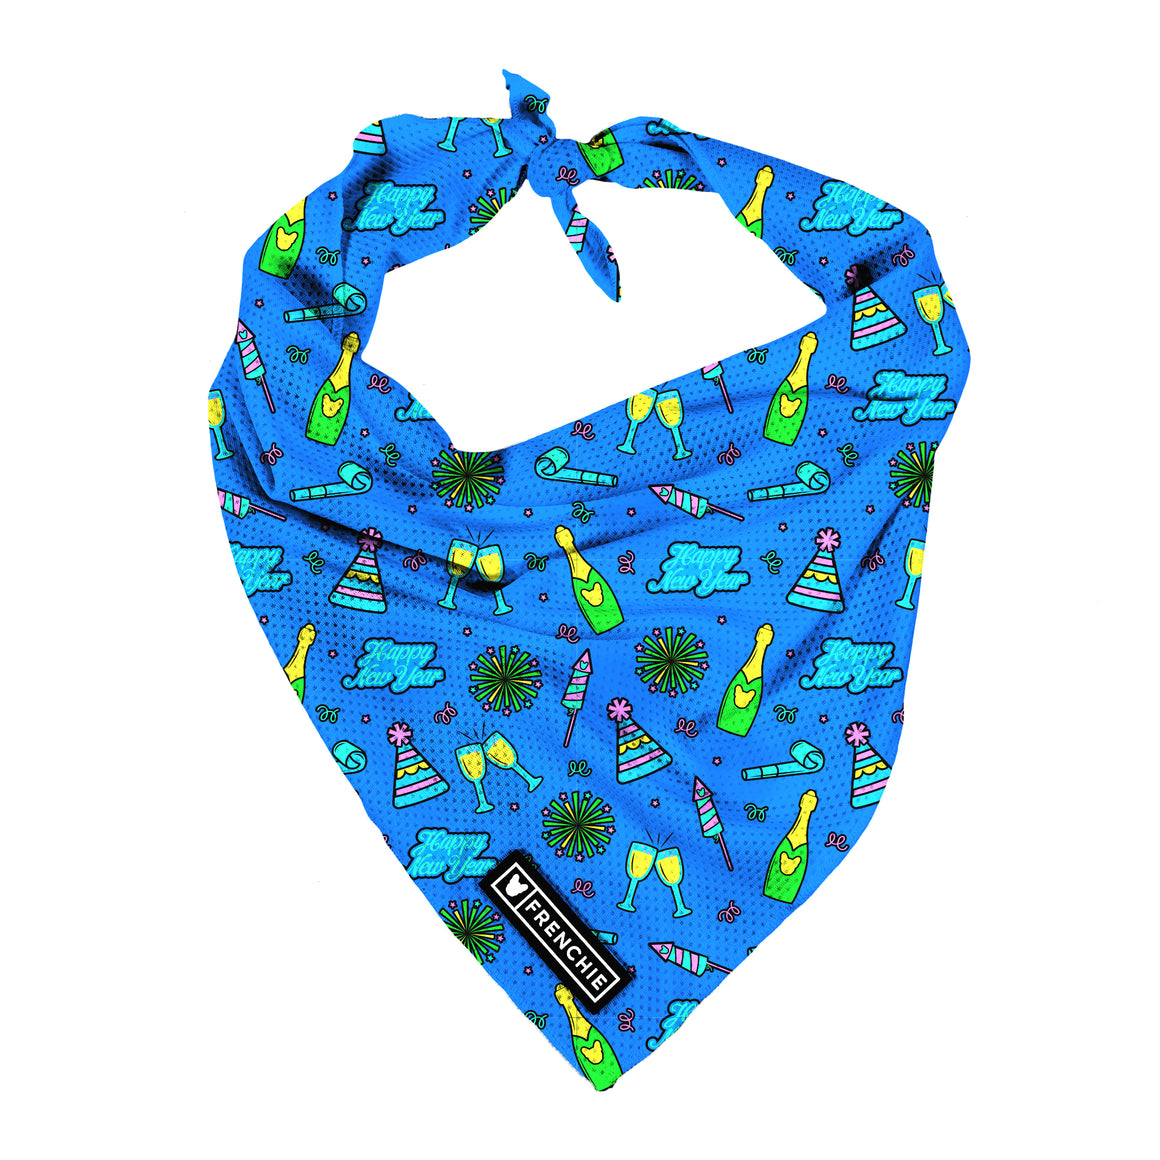 Frenchie Cooling Bandana- New Year, New Me - Frenchie Bulldog - Shop Harnesses for French Bulldogs - Shop French Bulldog Harness - Harnesses for Pugs